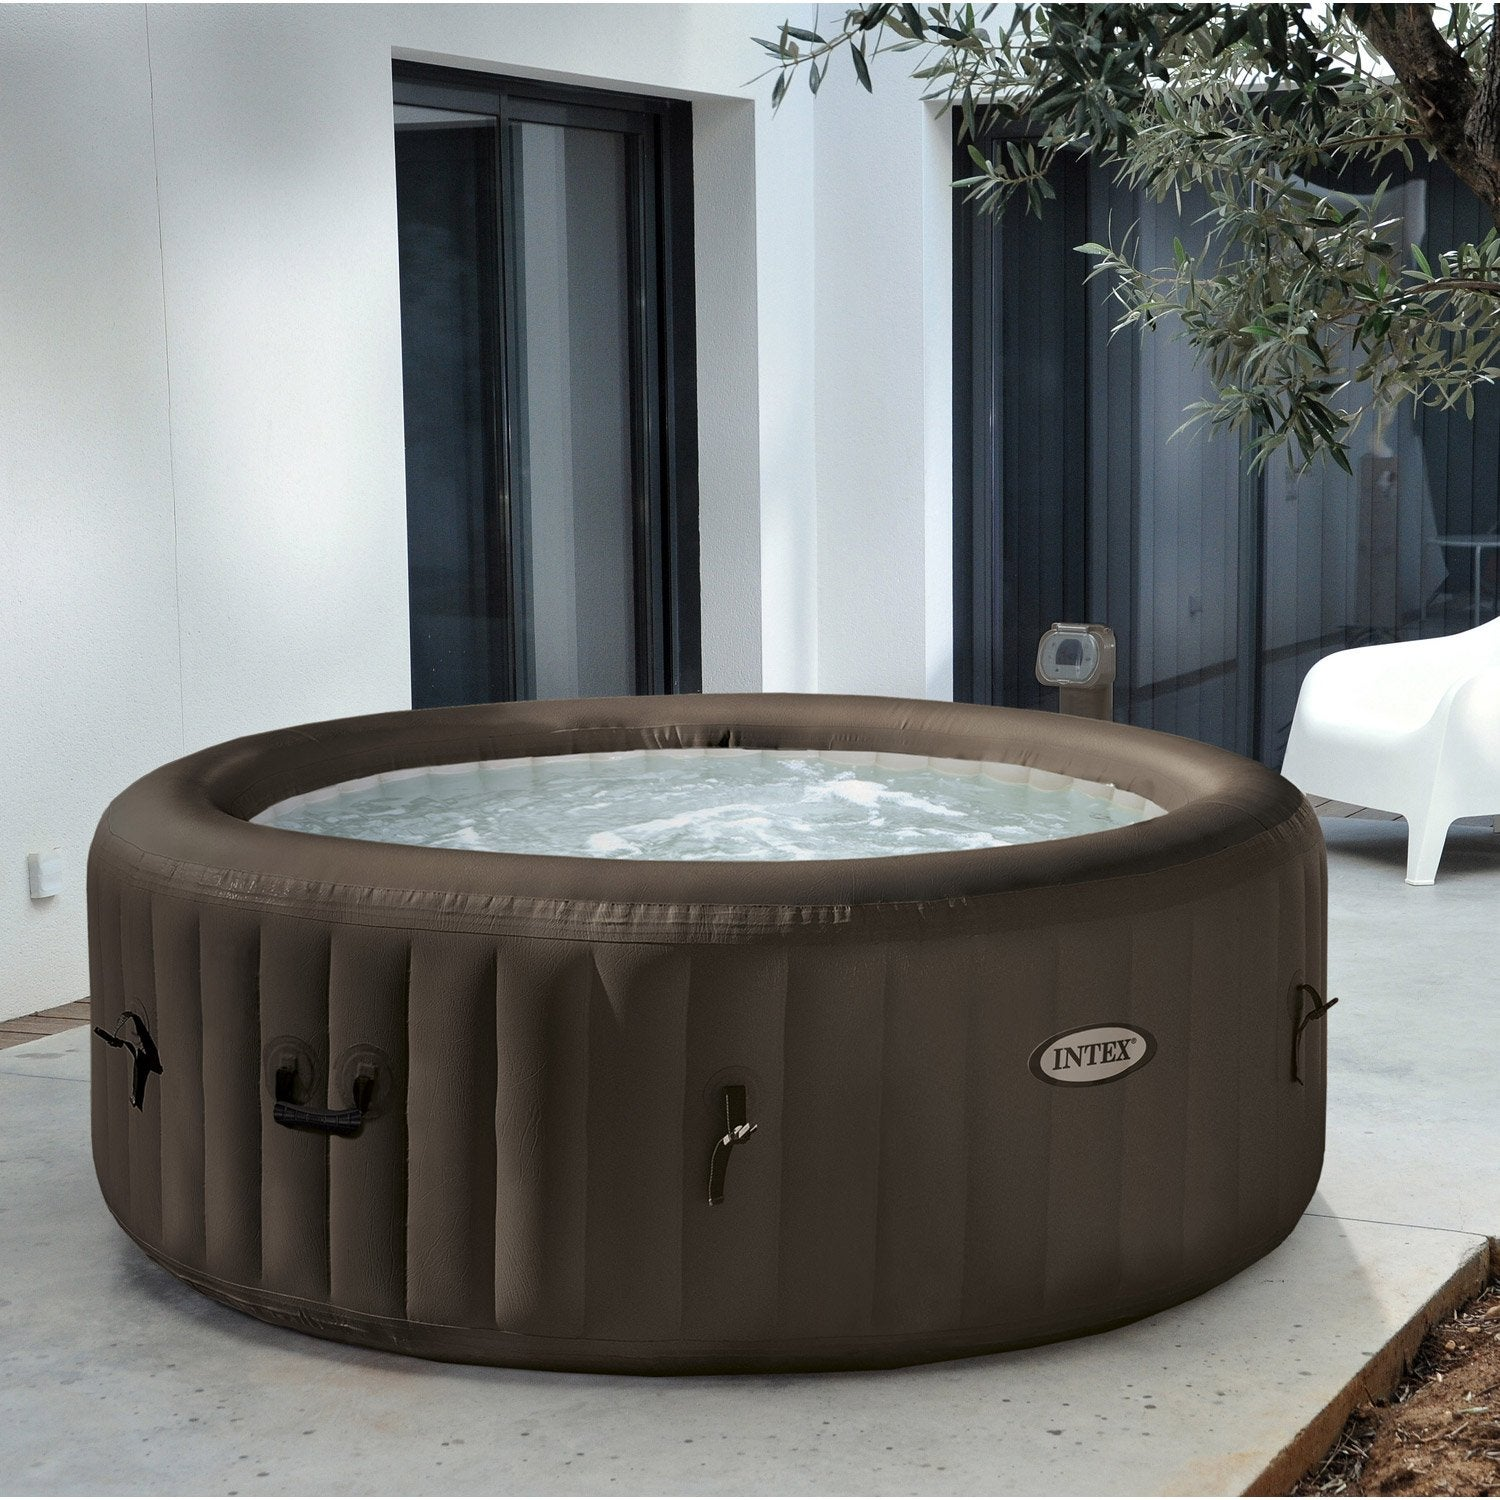 Awesome Spa Exterieur Leroy Merlin #11: Spa Gonflable INTEX Purespa Jets Rond, 4 Places Assises